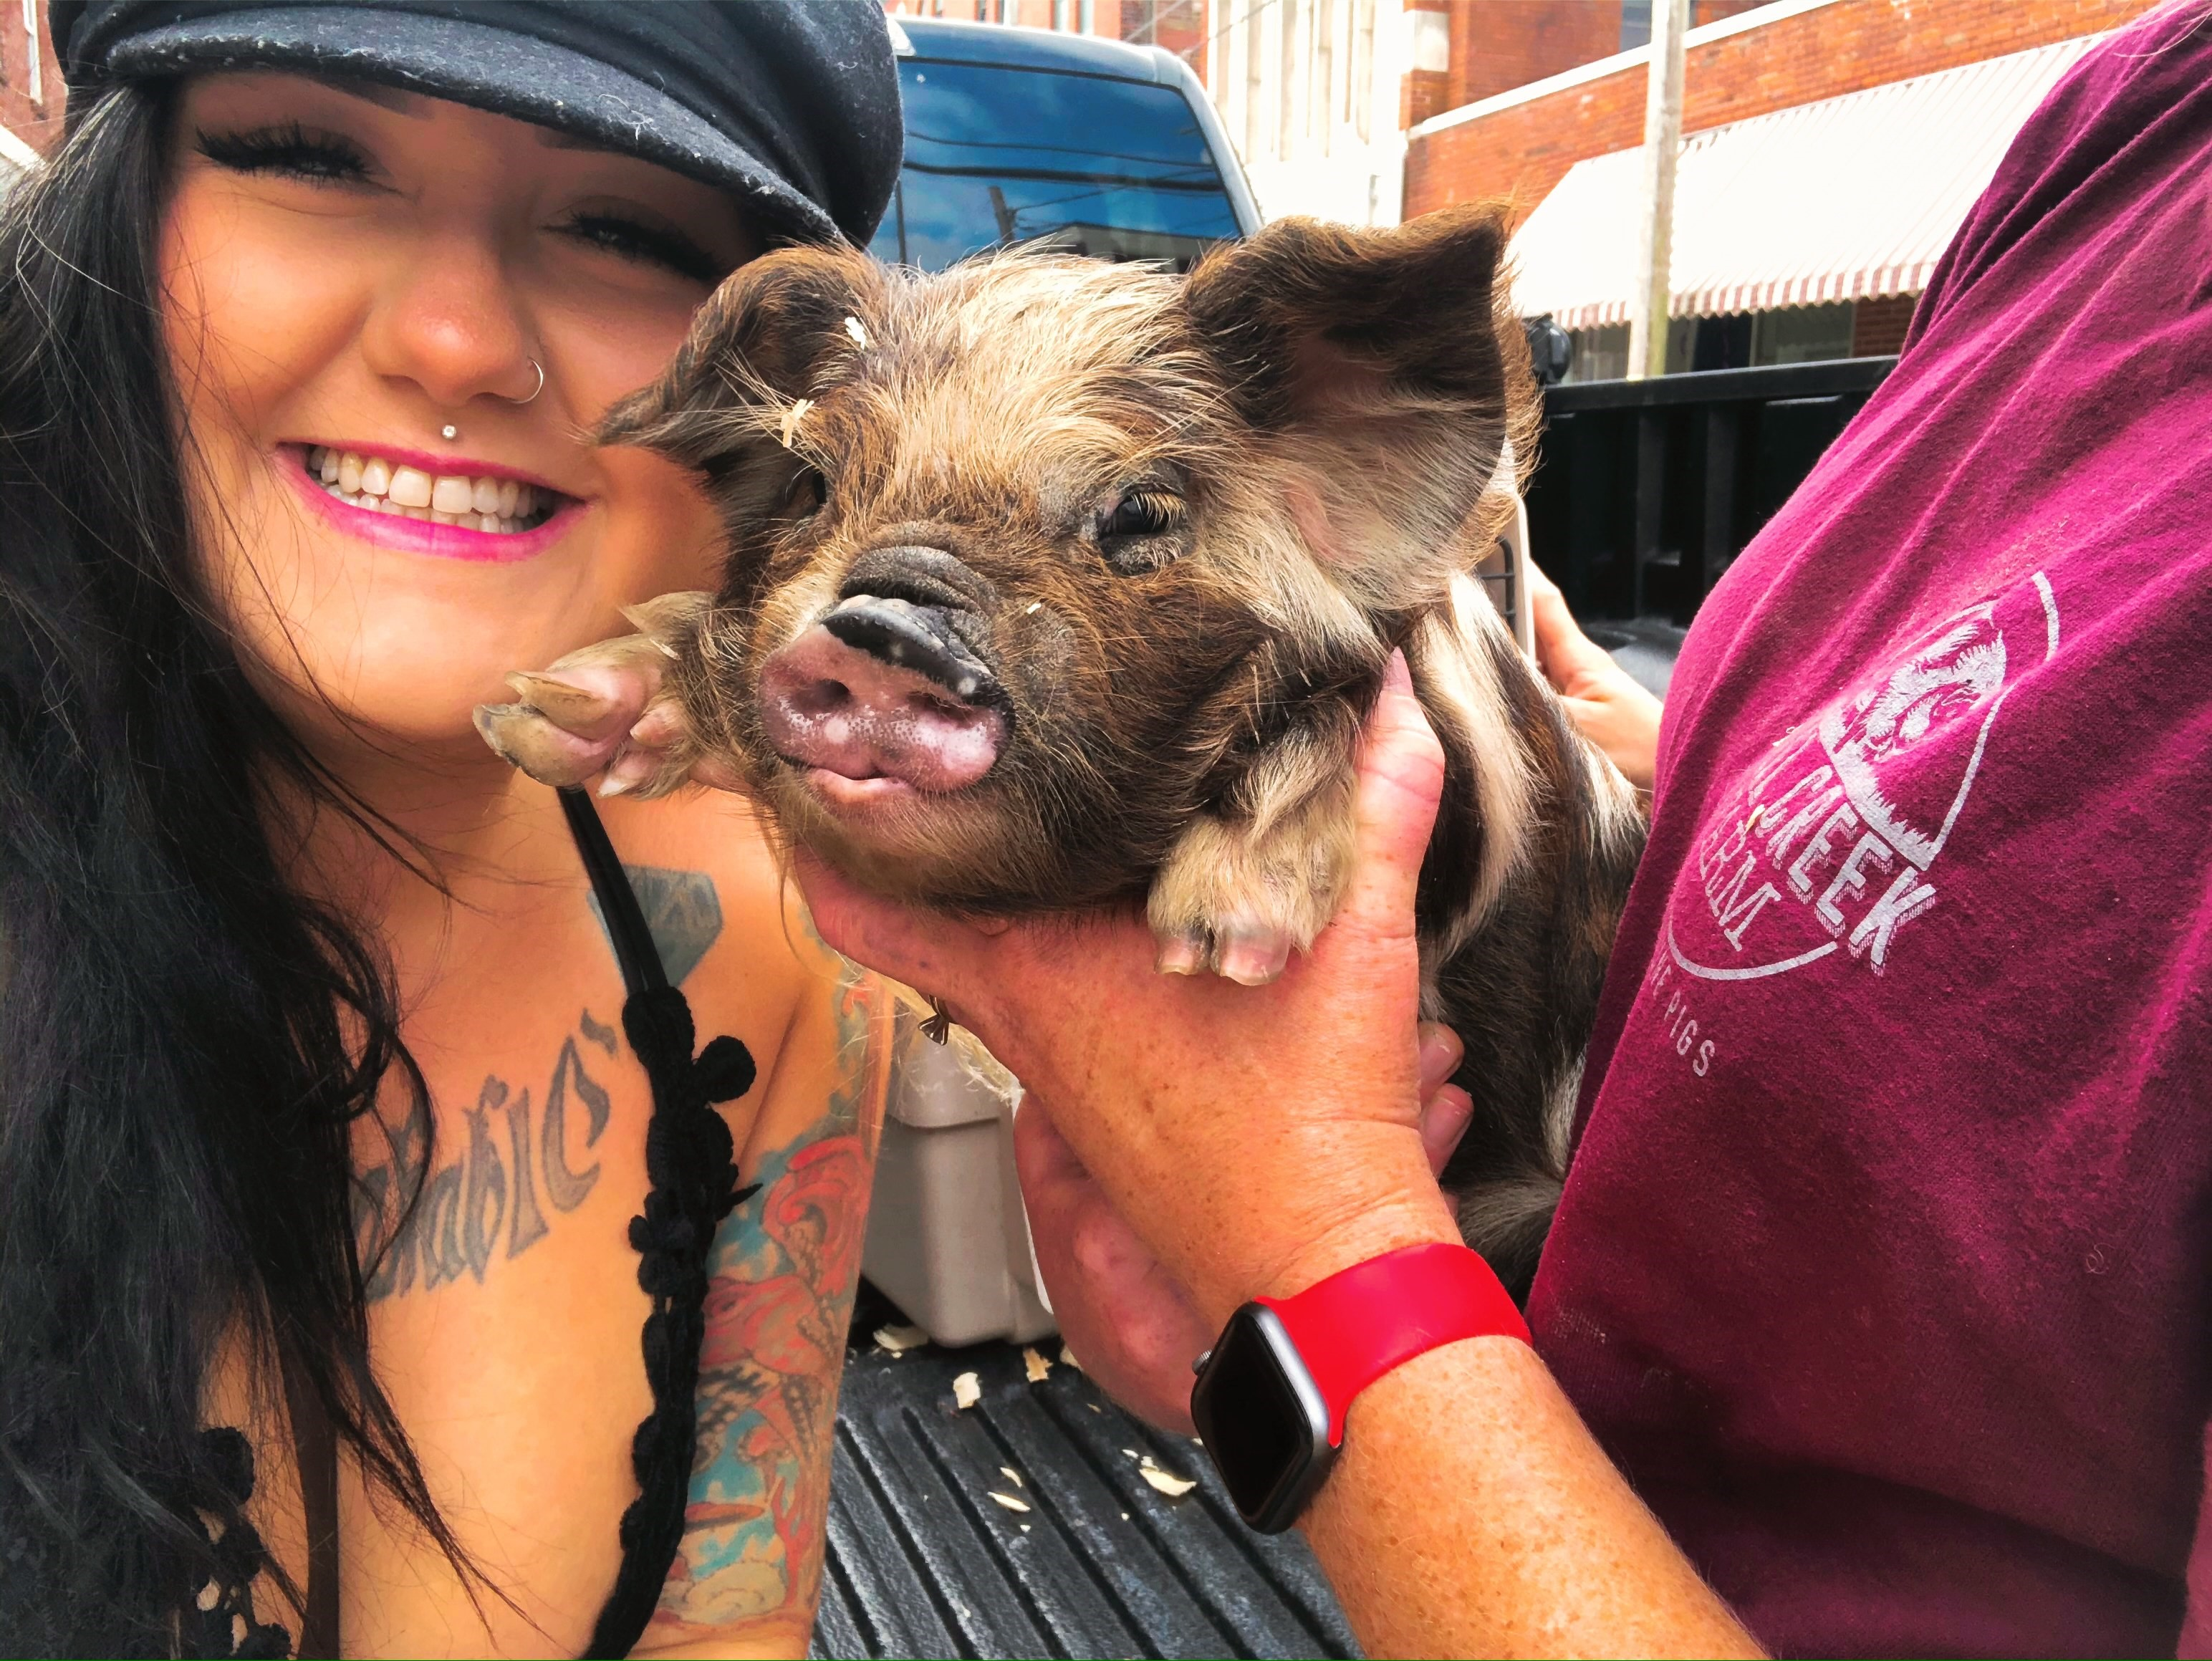 woman smiling with cute piglet